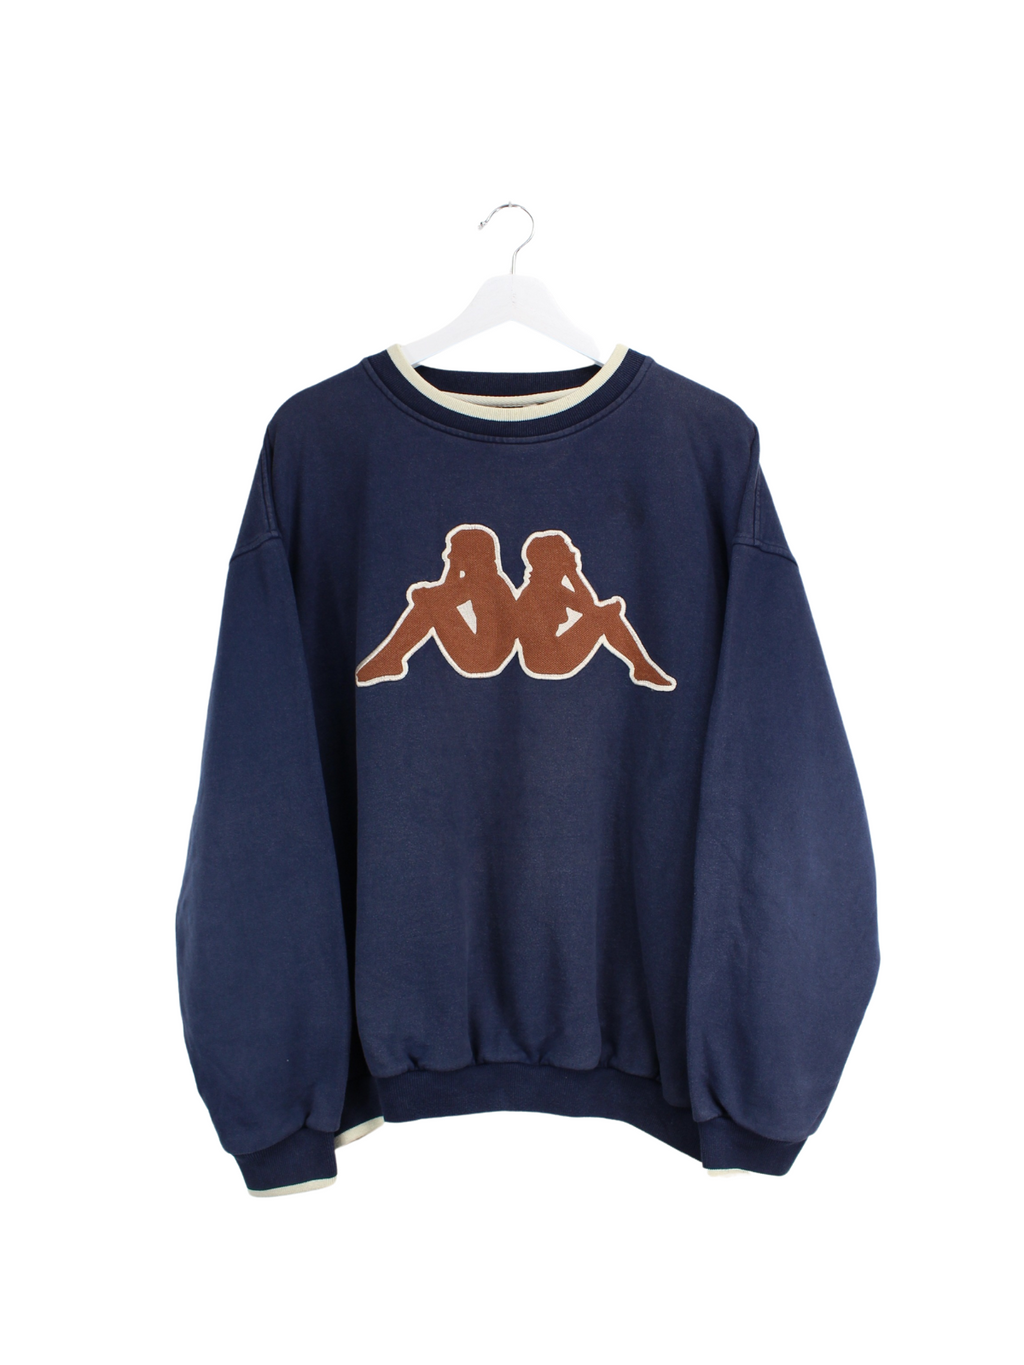 Kappa Sweater Blau XL